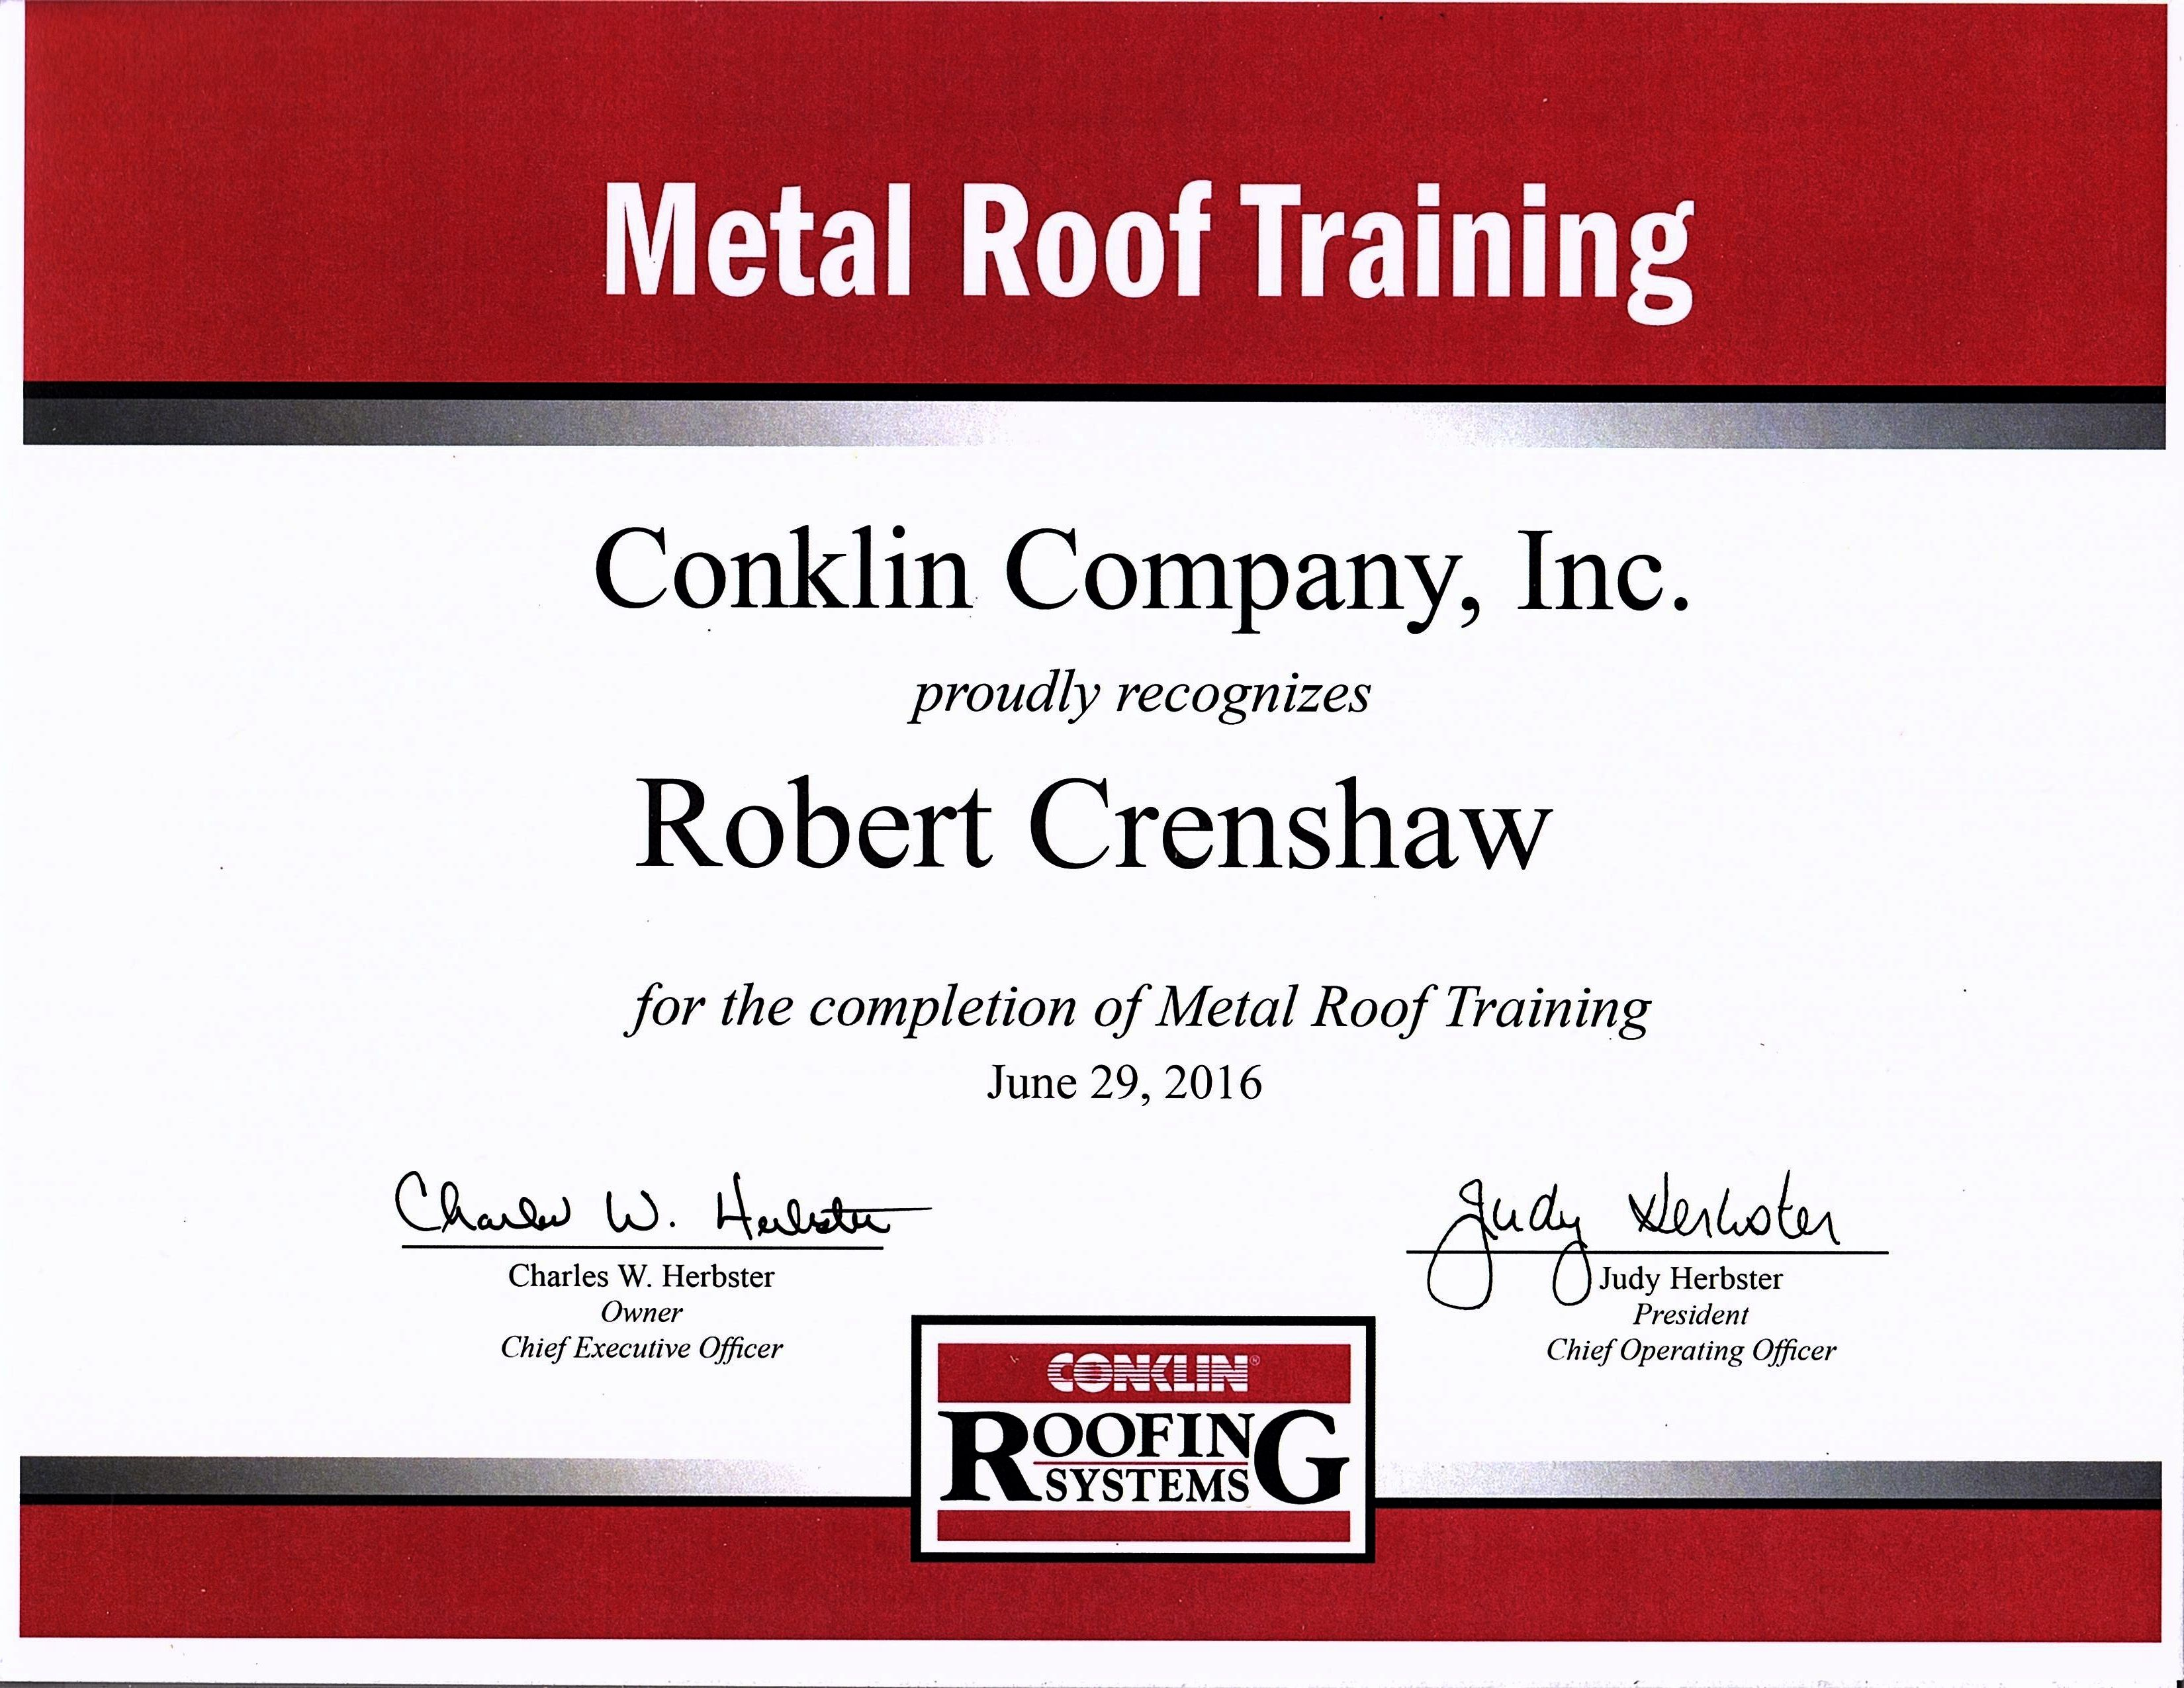 Certified Conklin Contractor Chief Operating Officer Chief Executive Officer Conklin